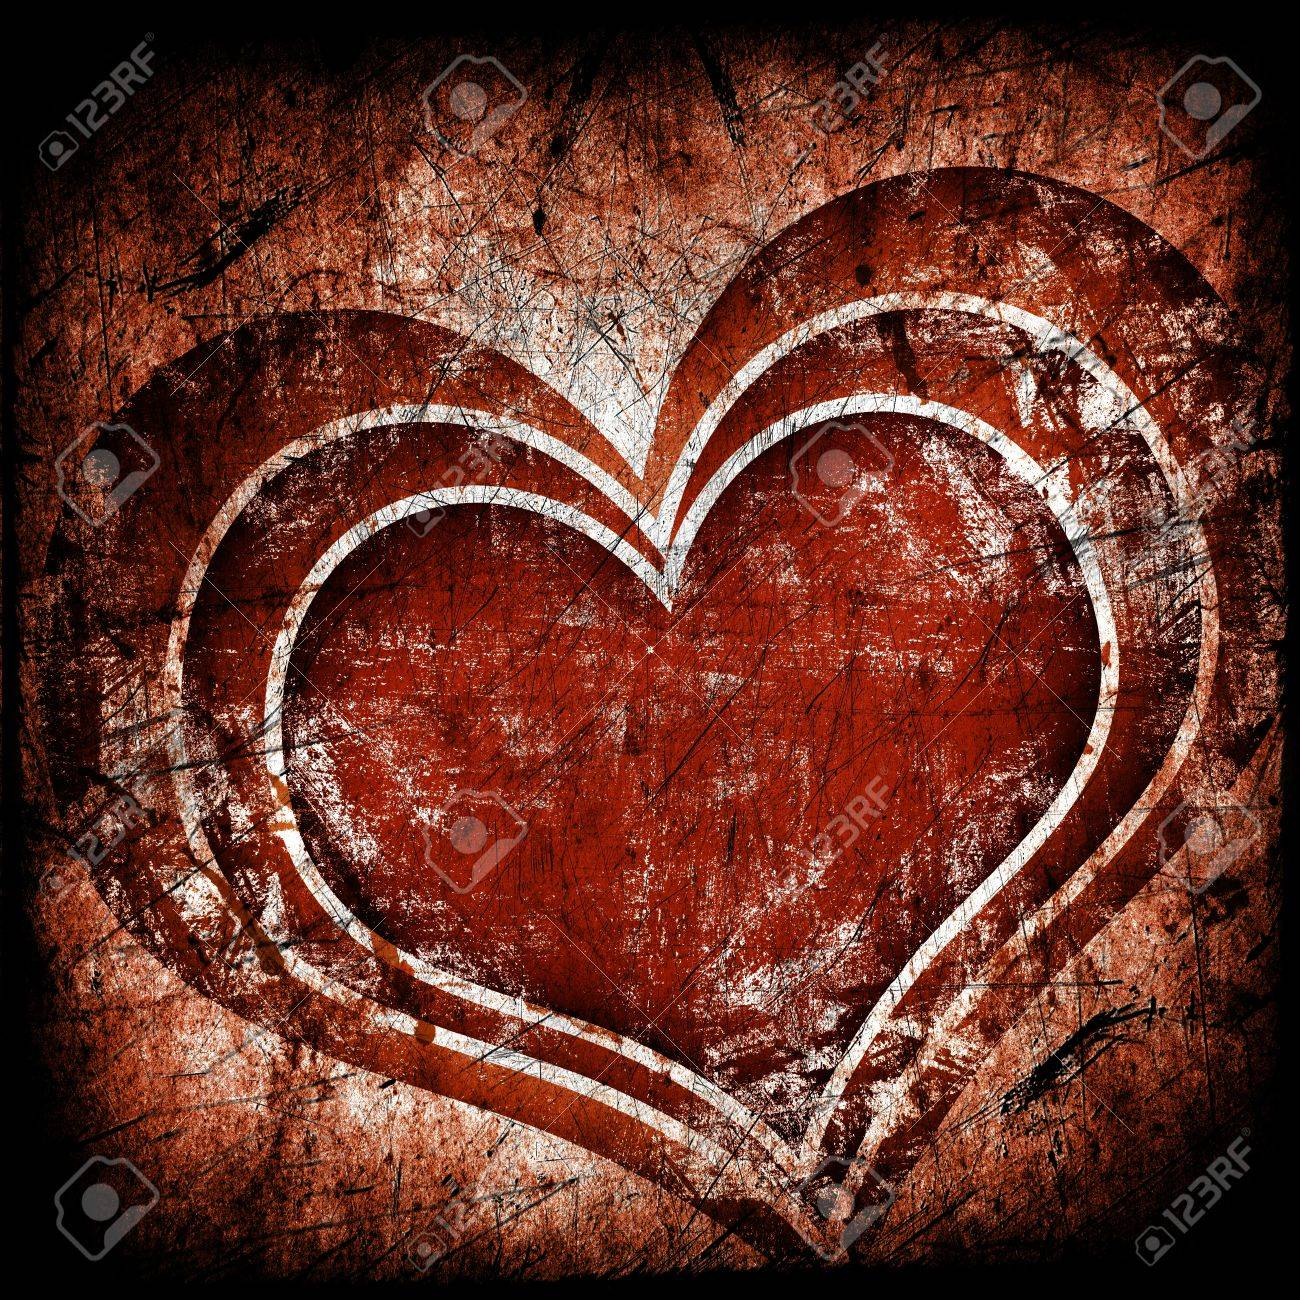 grunge art background with hearts Stock Photo - 13134437